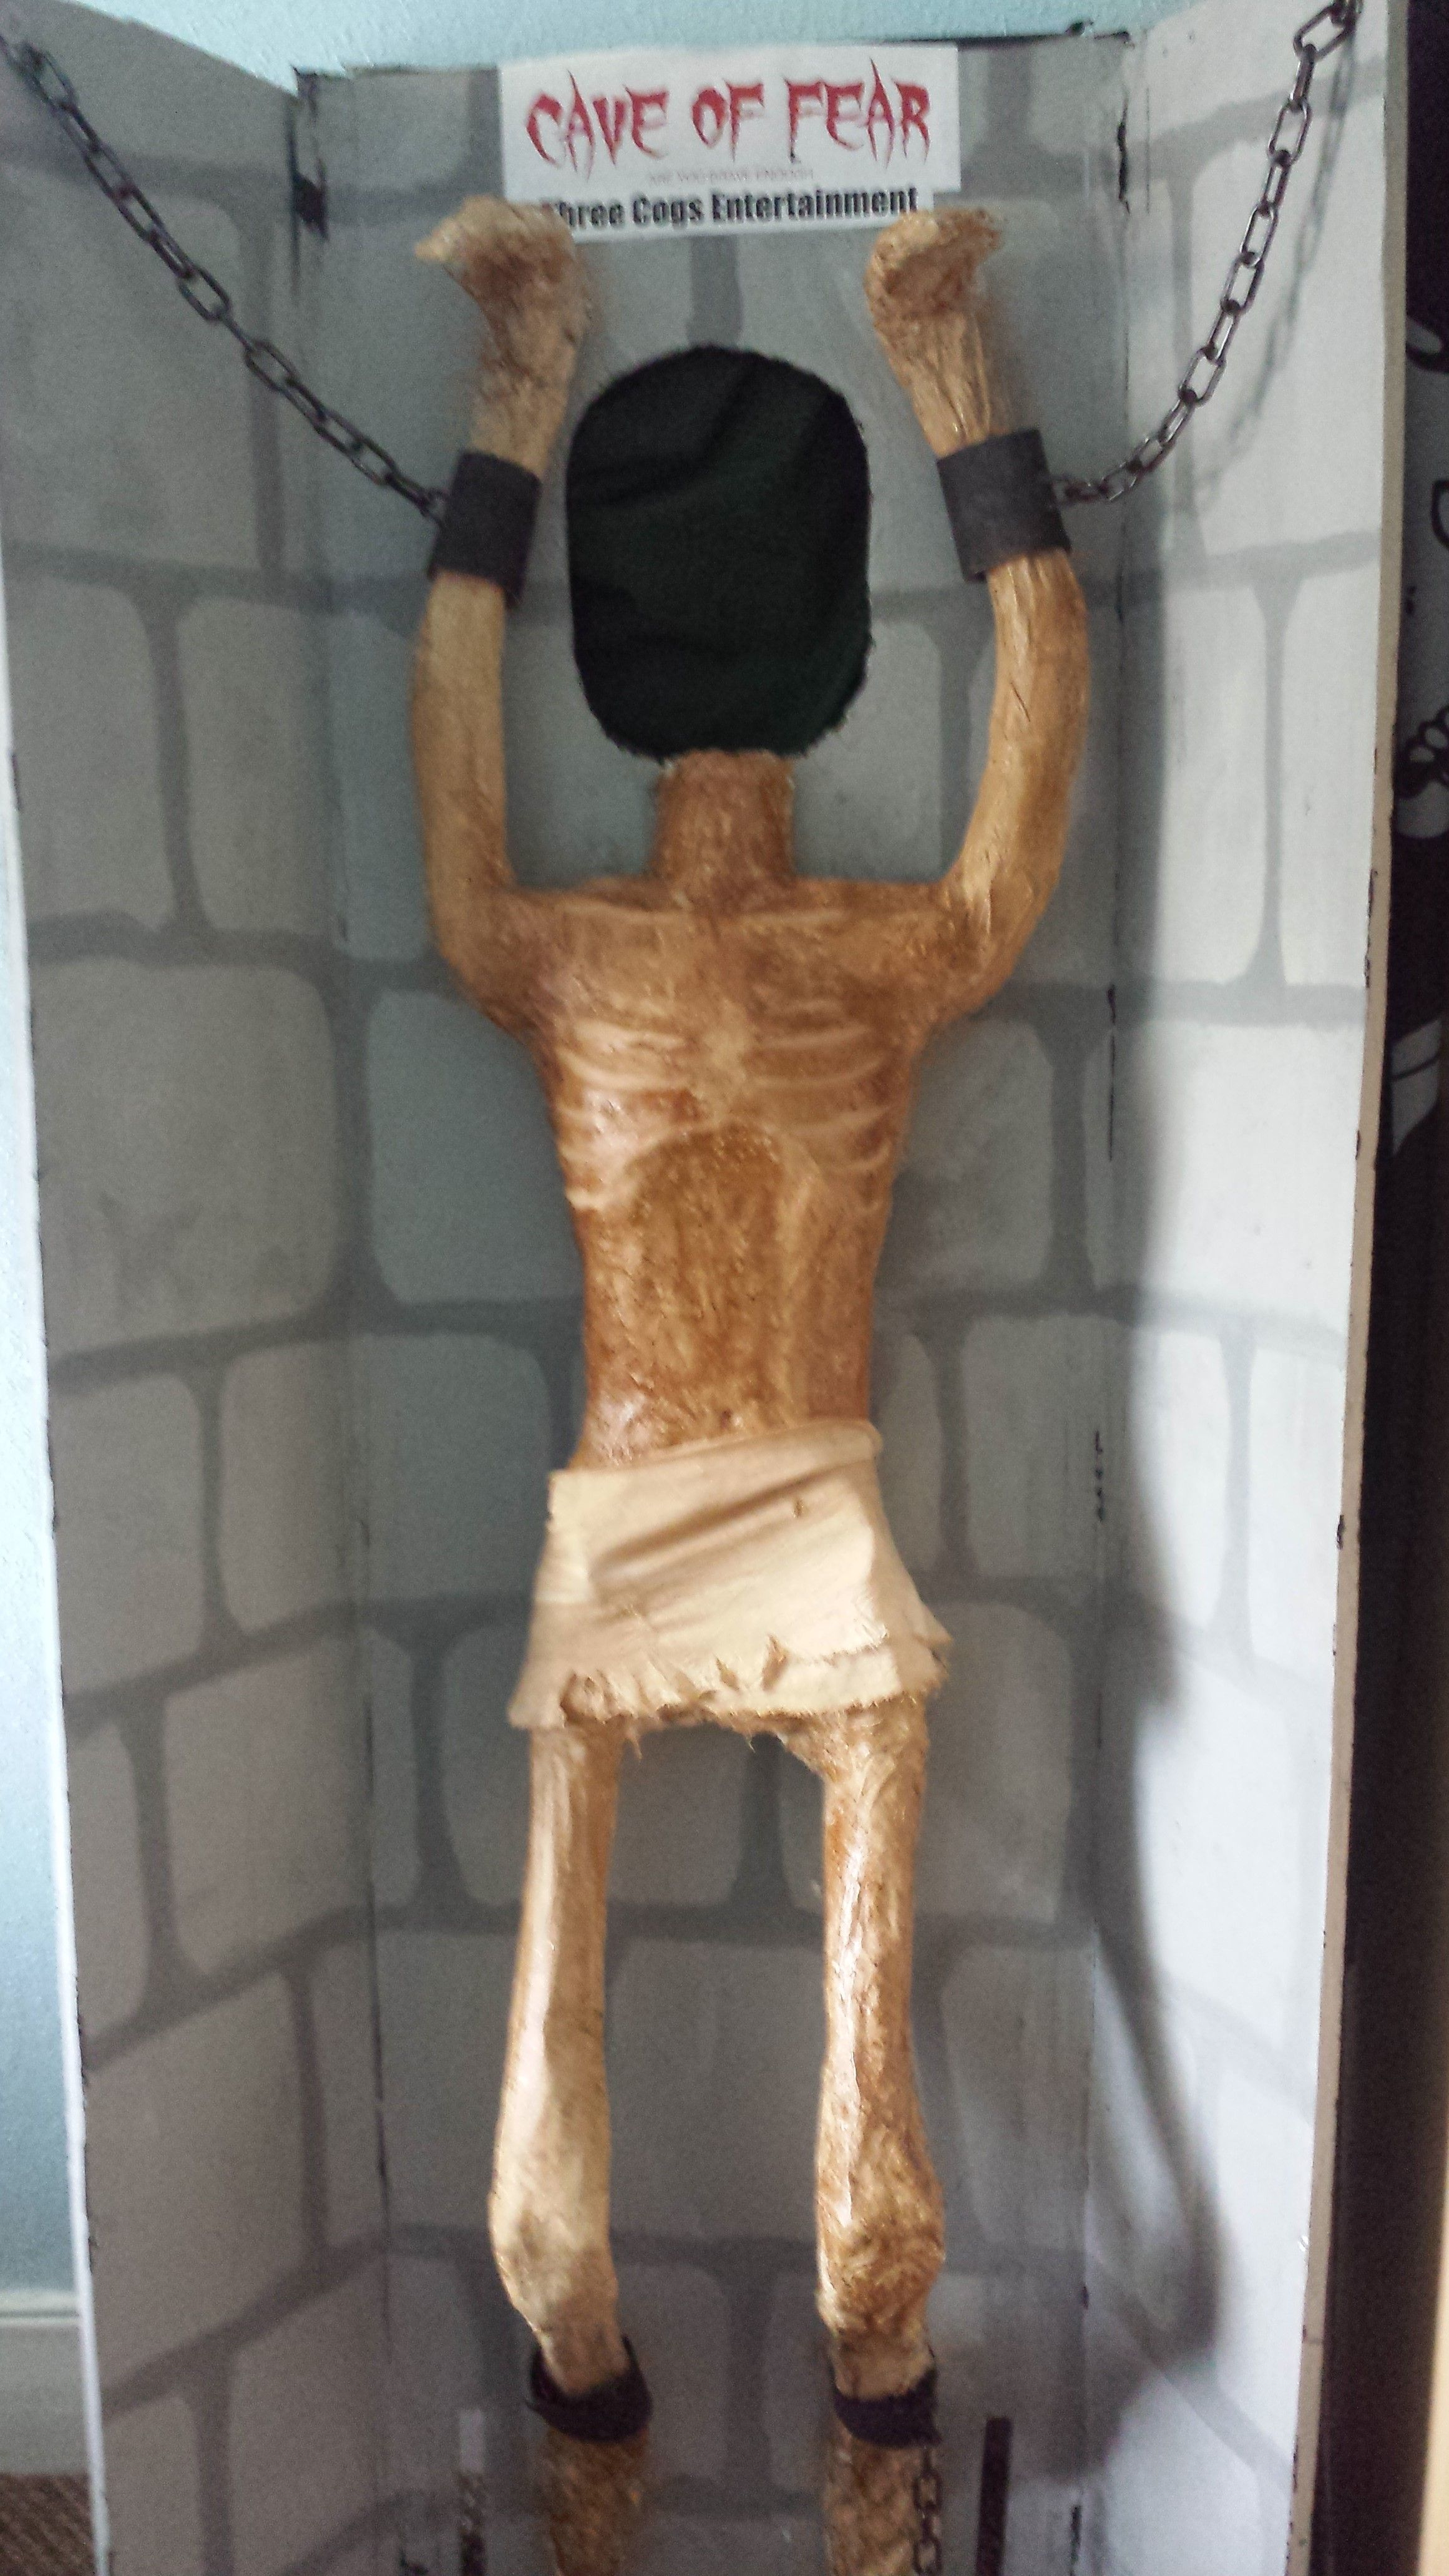 'Hanging Prisoner' photo opportunity.  Recycled wardrobe doors, reinforced at the back, with added feet for stability.  paper mache over a skeleton for the body base,  #3CogsEntertainment